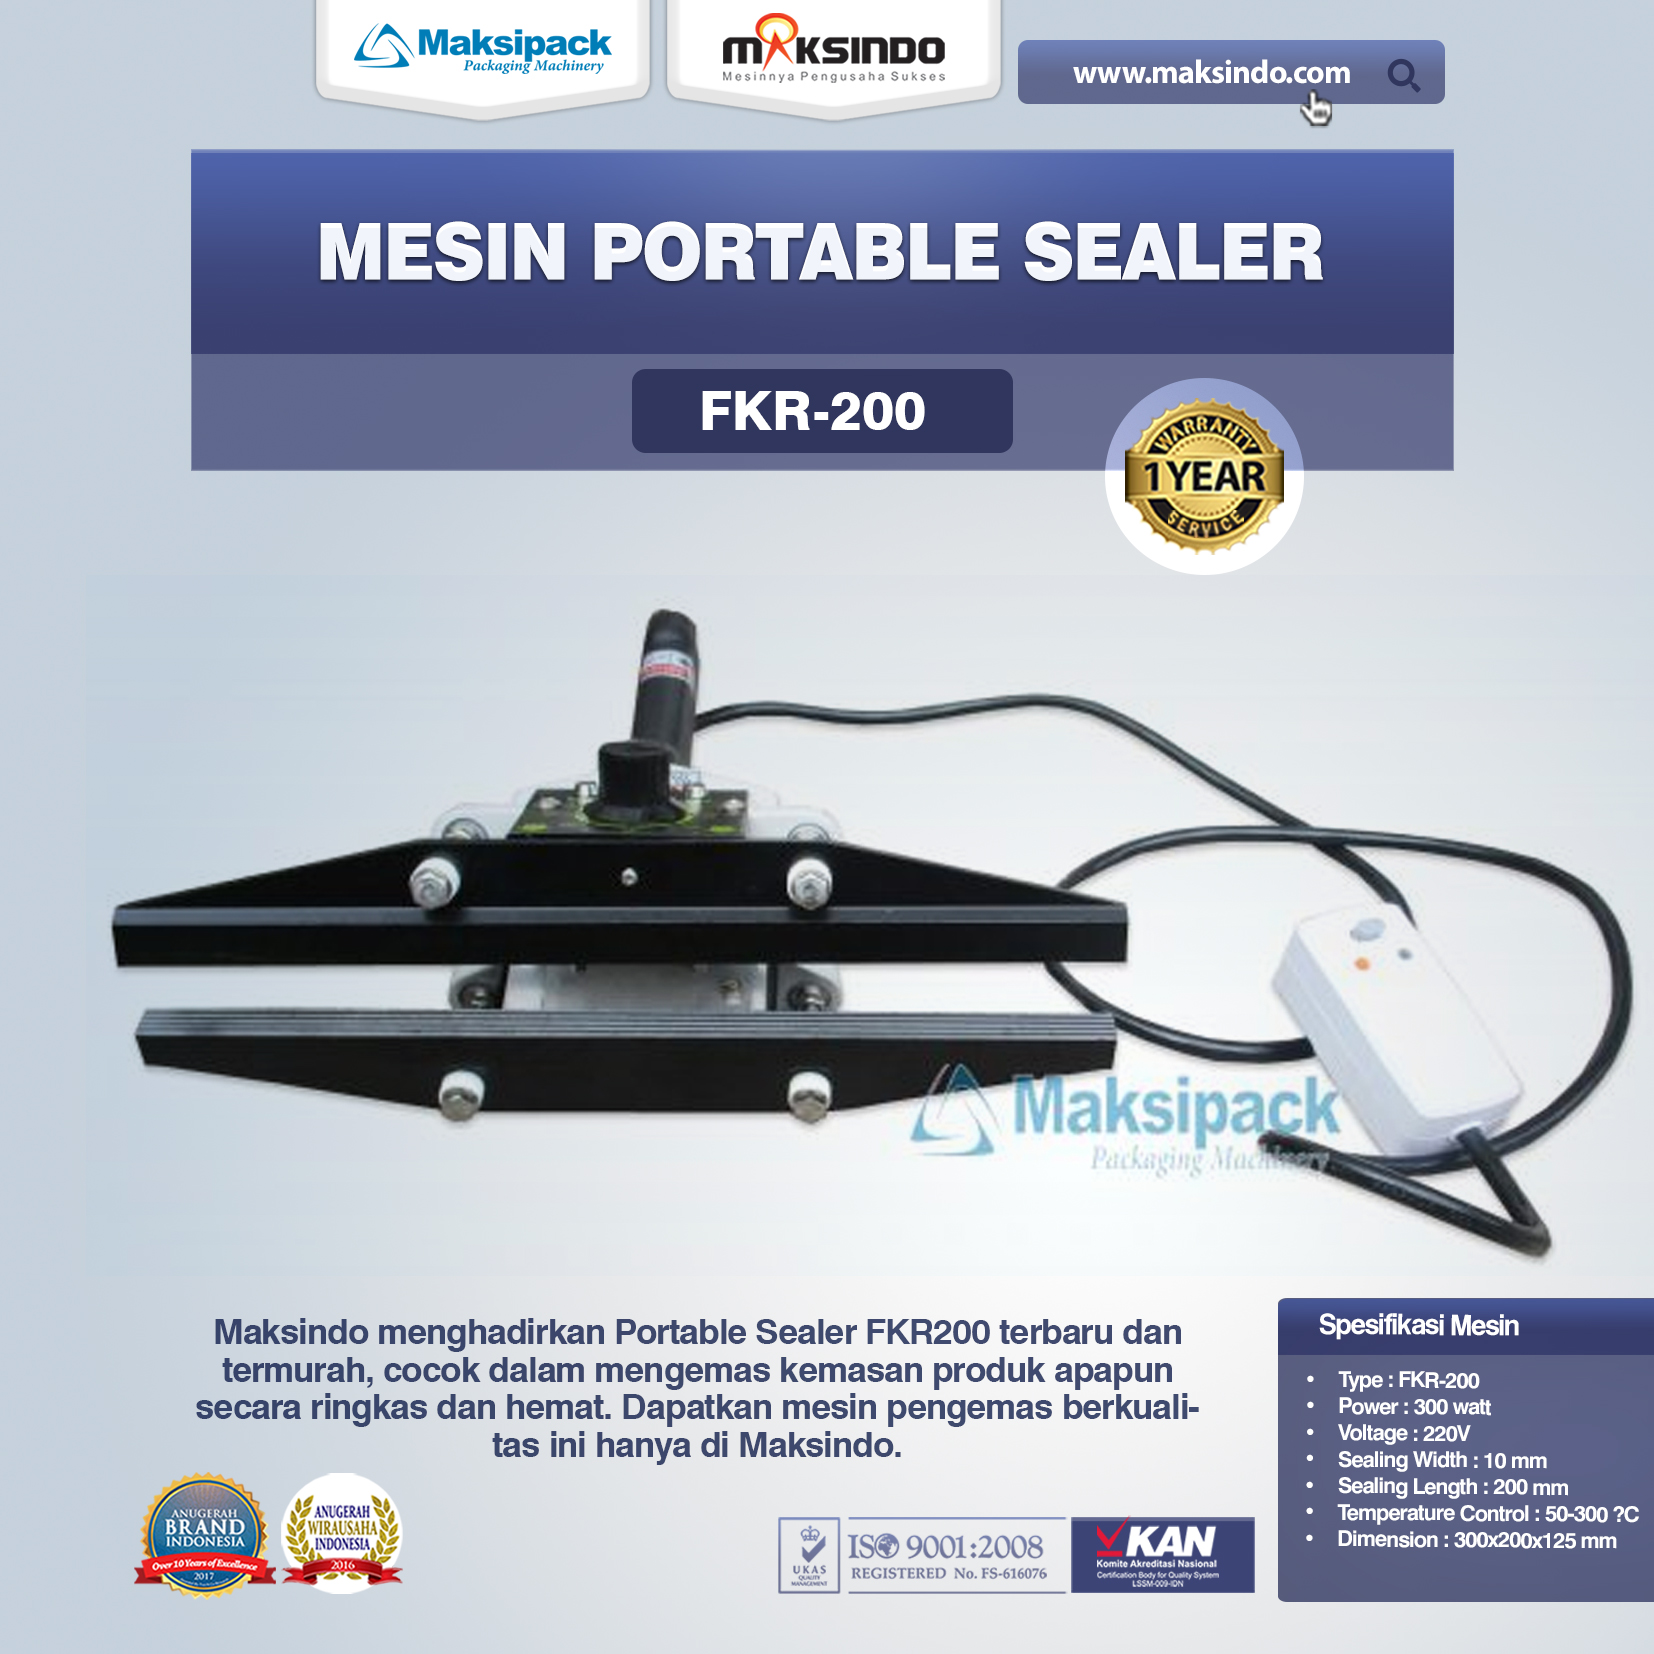 Mesin Portable Sealer FKR-200